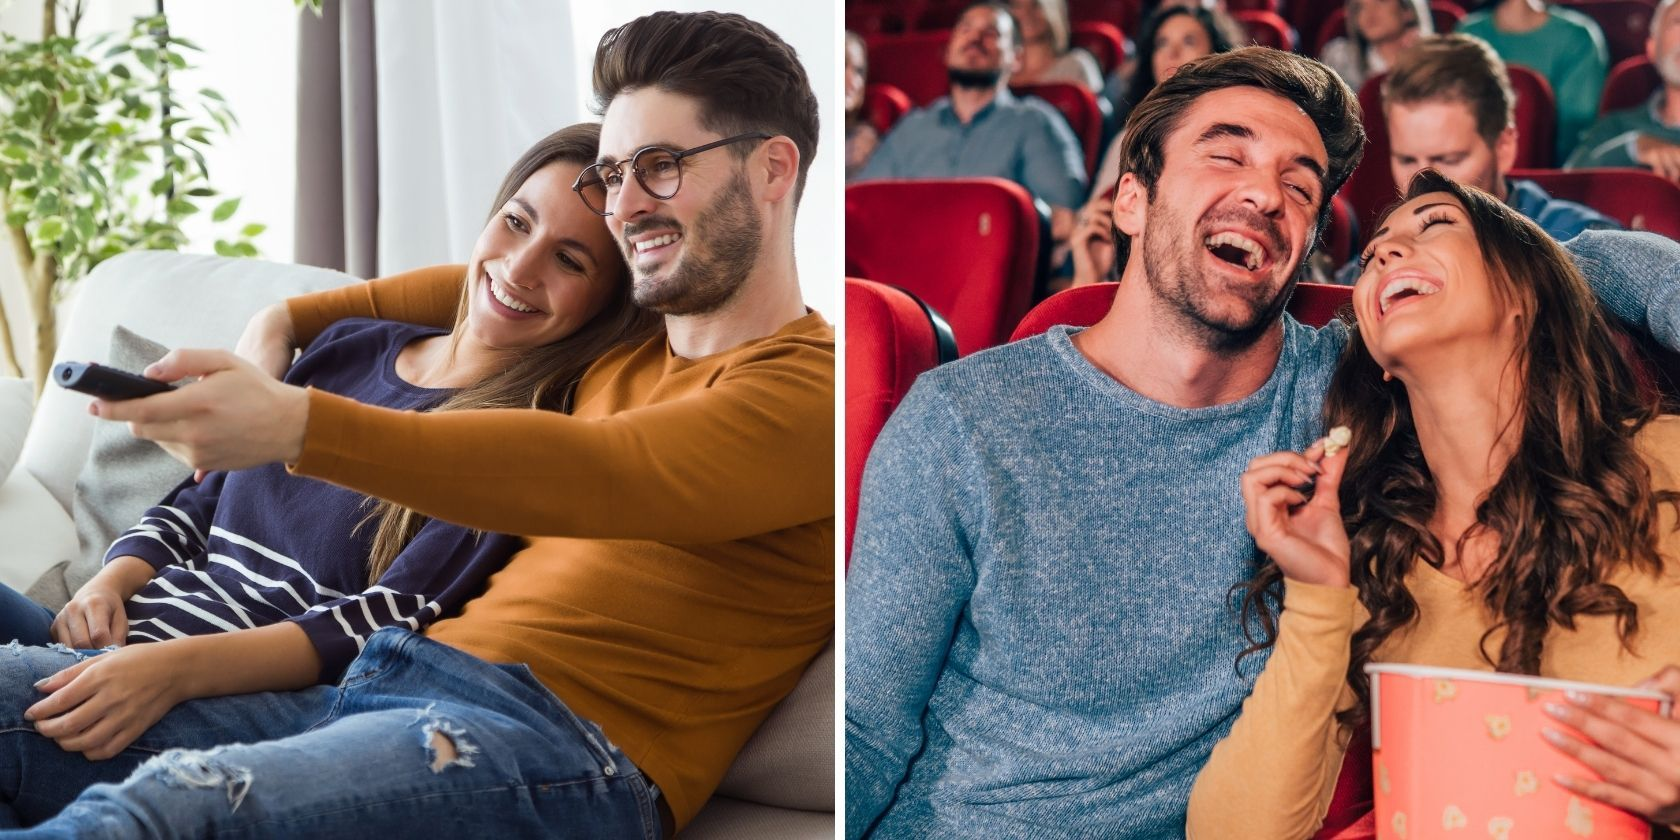 Is 2021 The End of Movie Theatres?